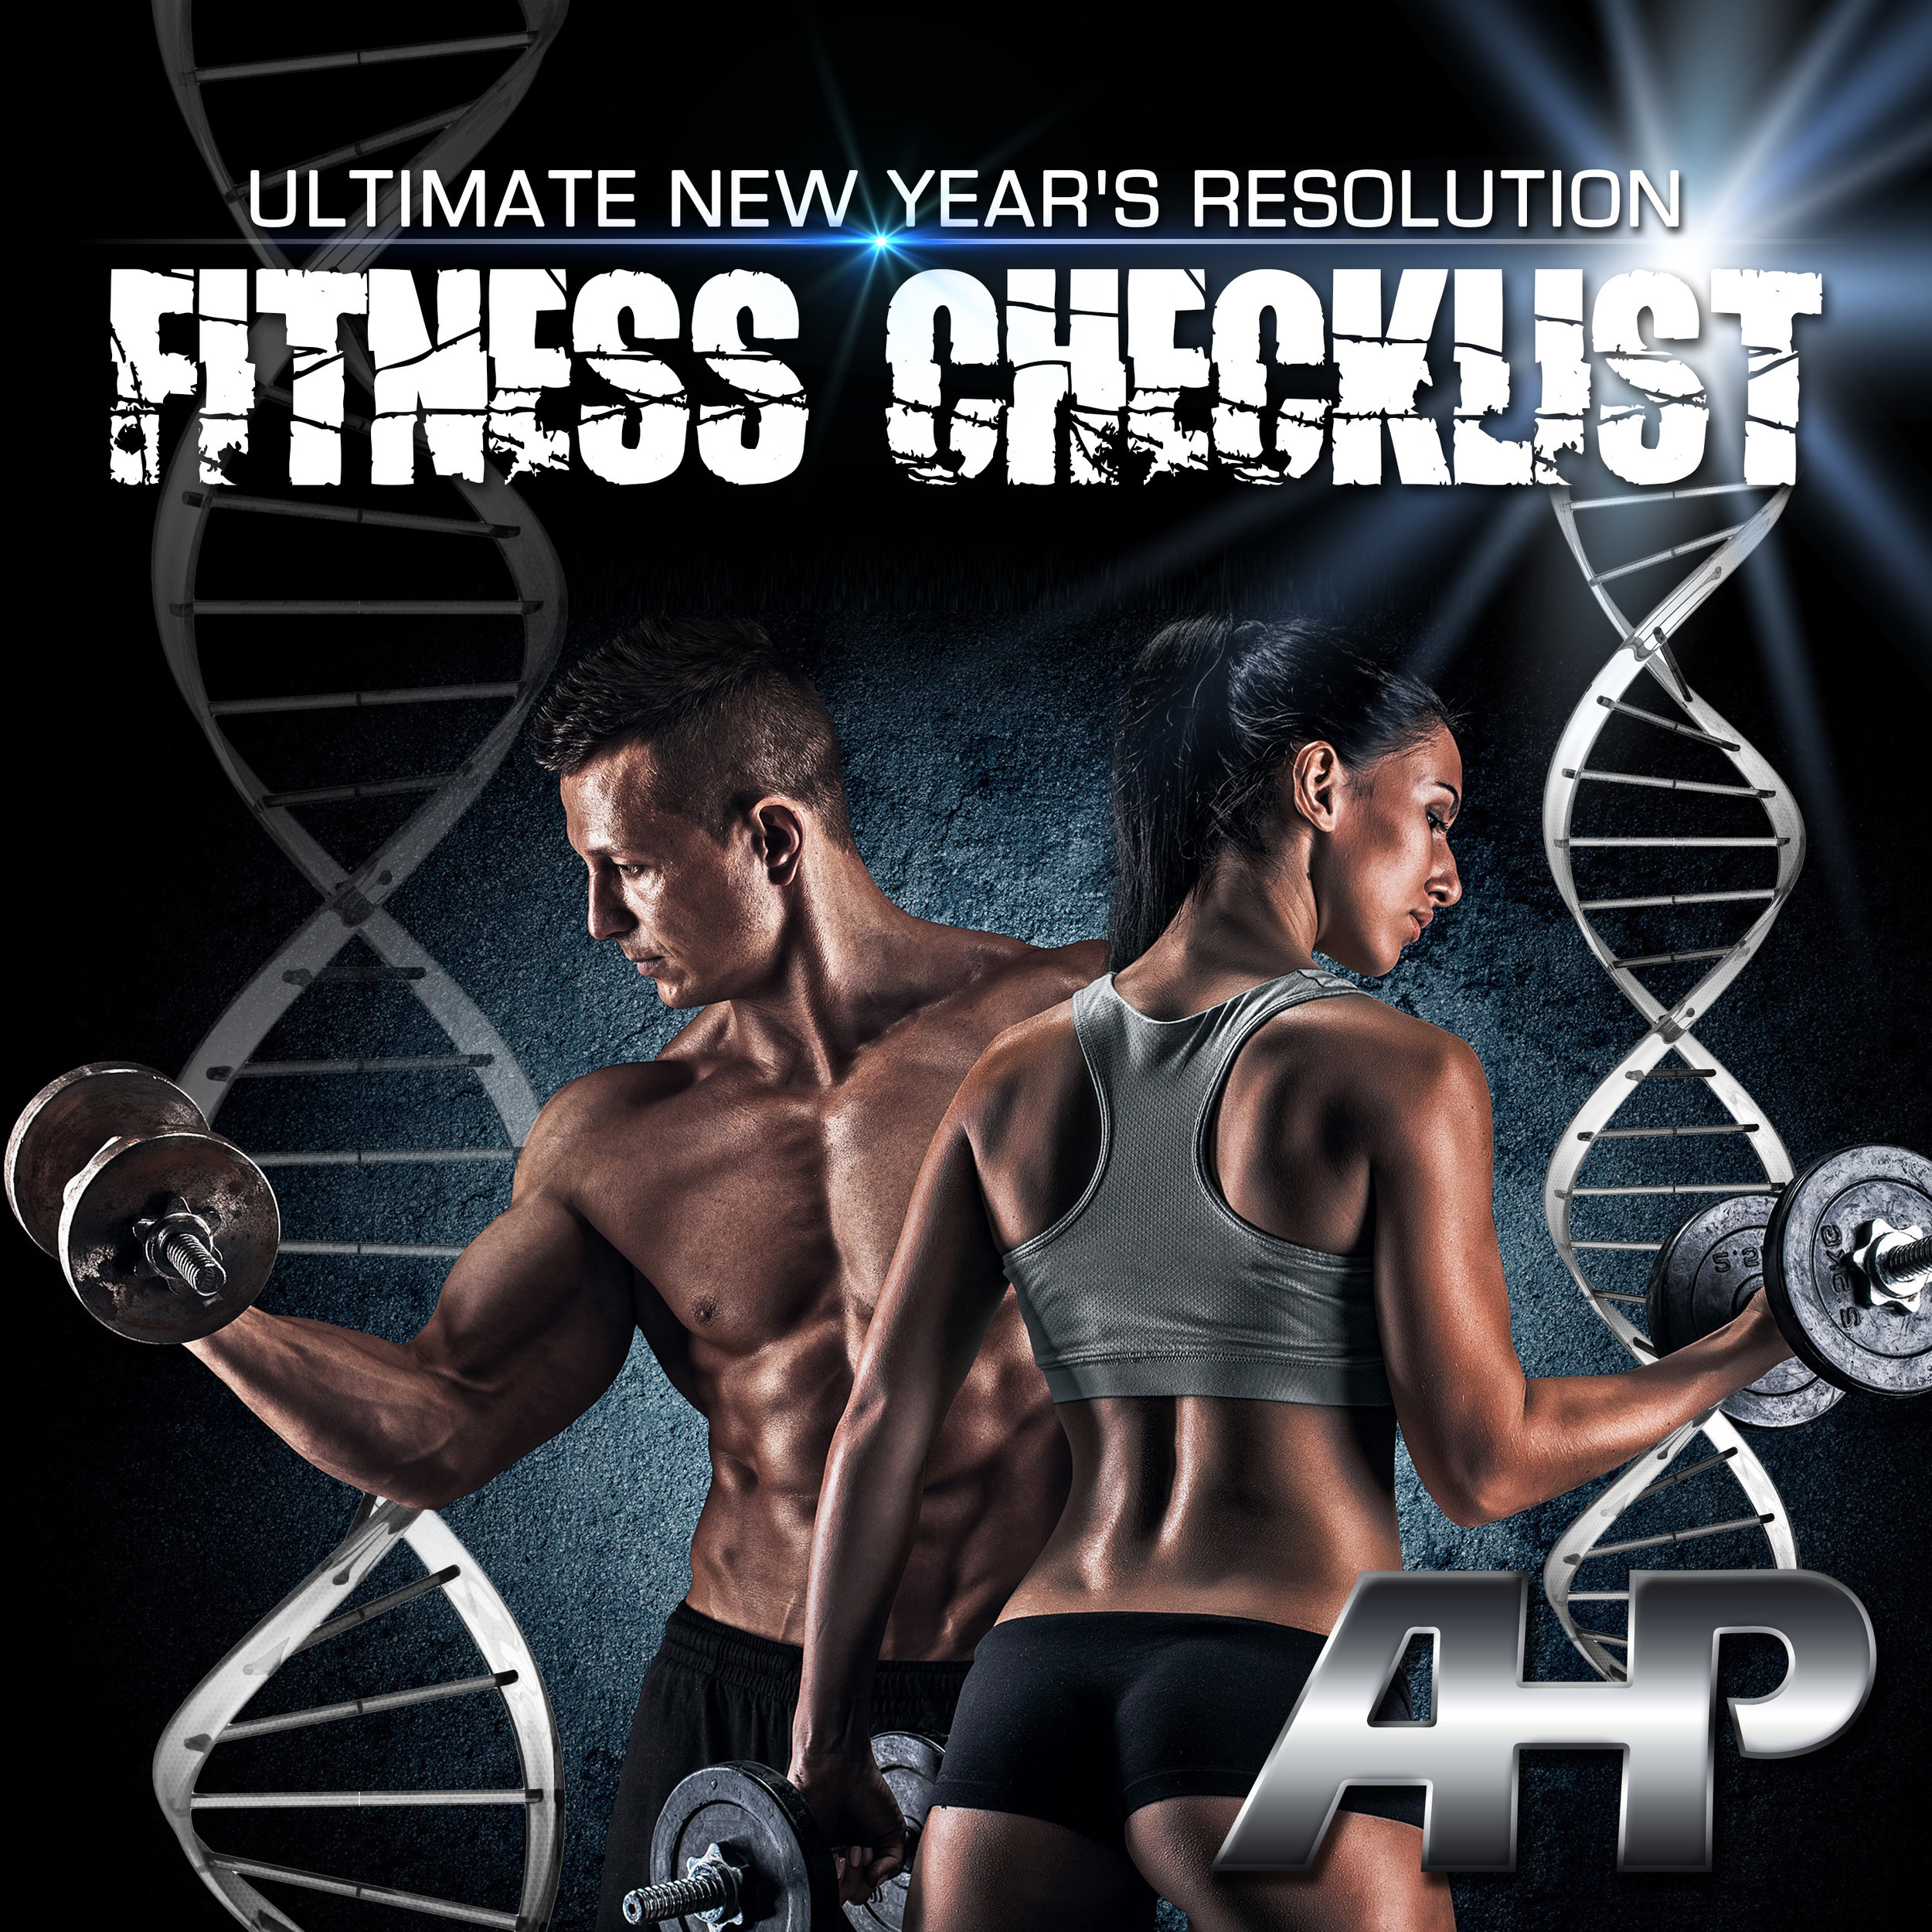 New Year's Fitness Checklist - Instagram Square.jpg